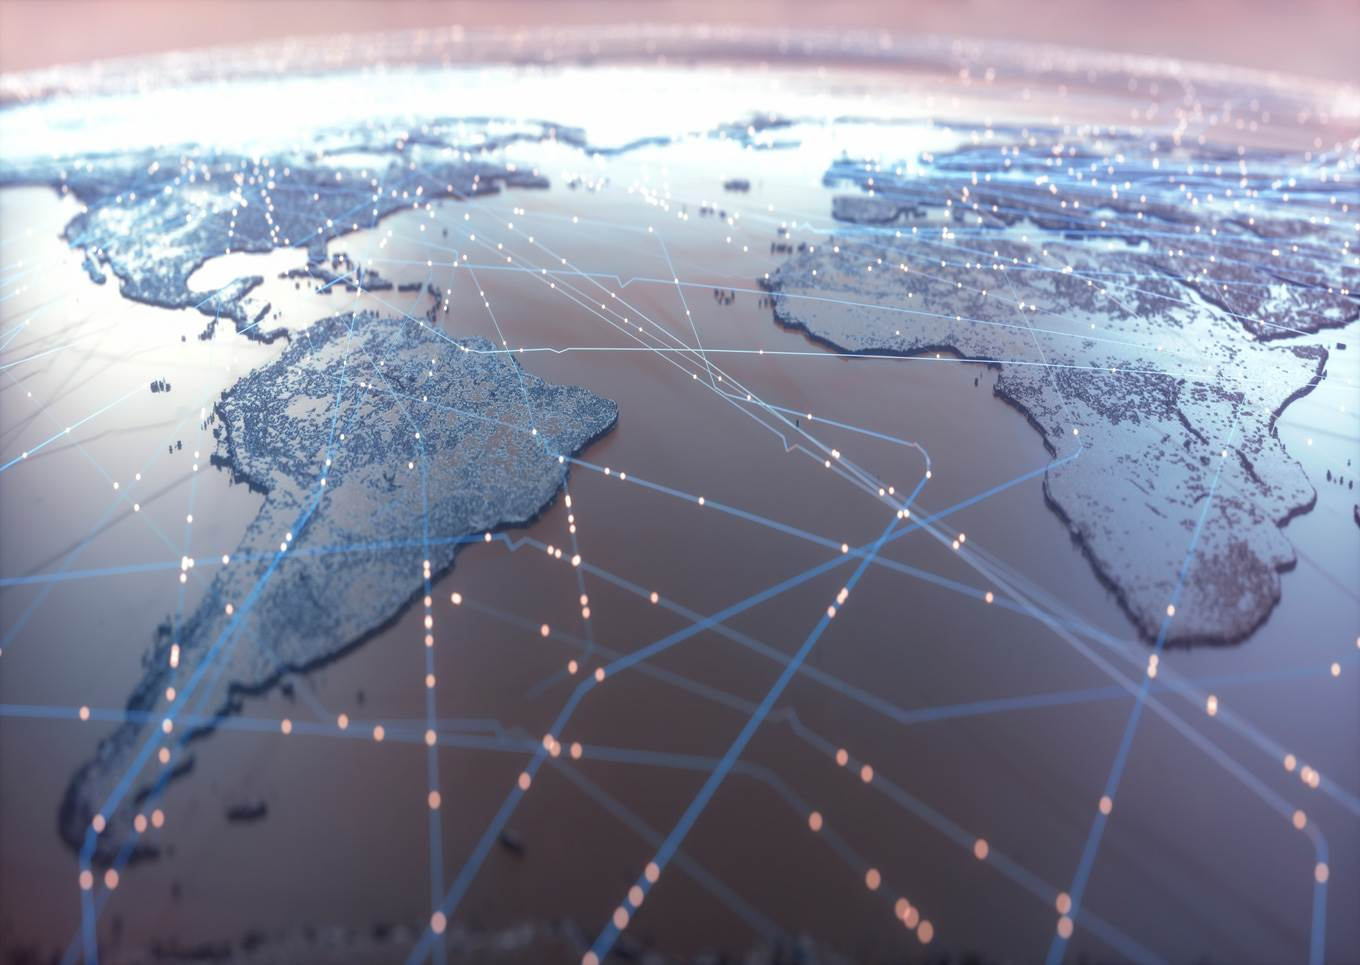 An Alternative View of Globalization 4.0 and How to Get There